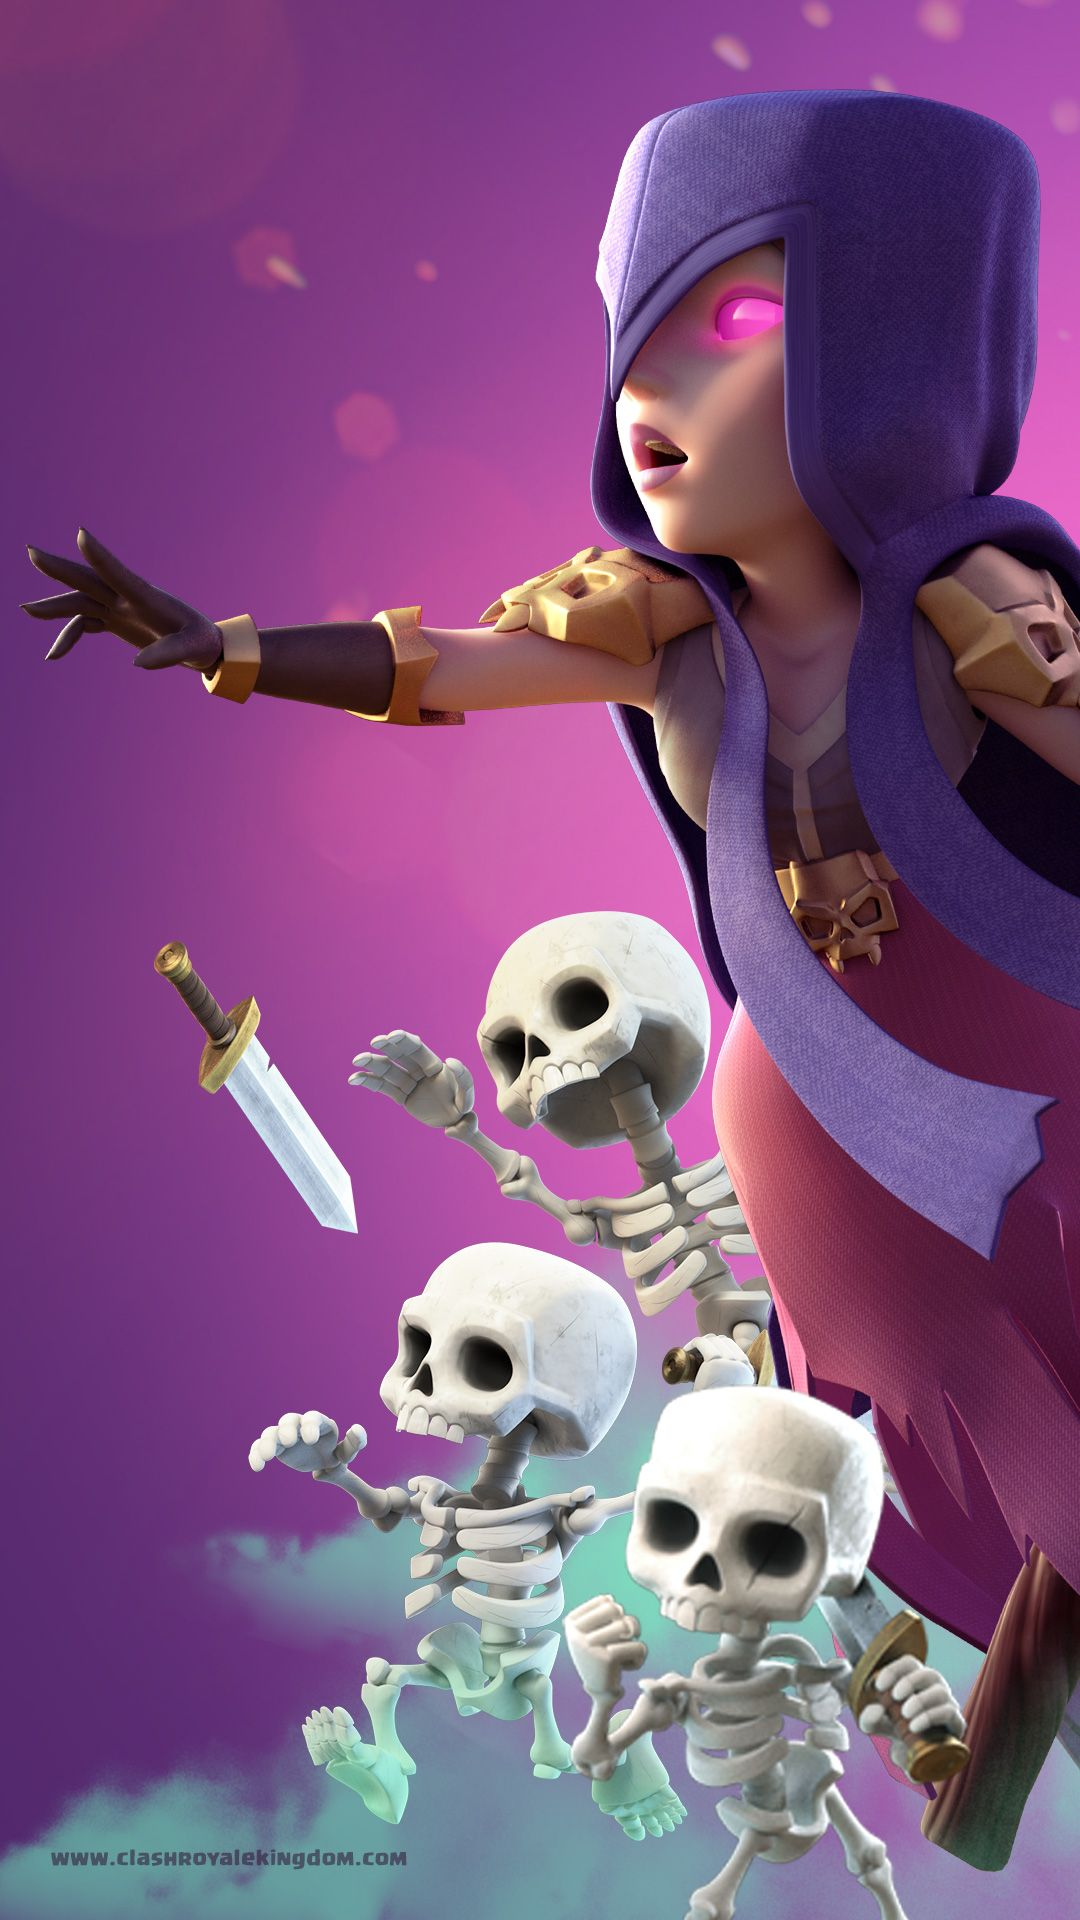 The Skeletons Were Born Inside Her Her Pink Eyes Keep Her Beauty Still Download High Quality Clash Clash Royale Wallpaper Clash Royale Drawings Clash Royale